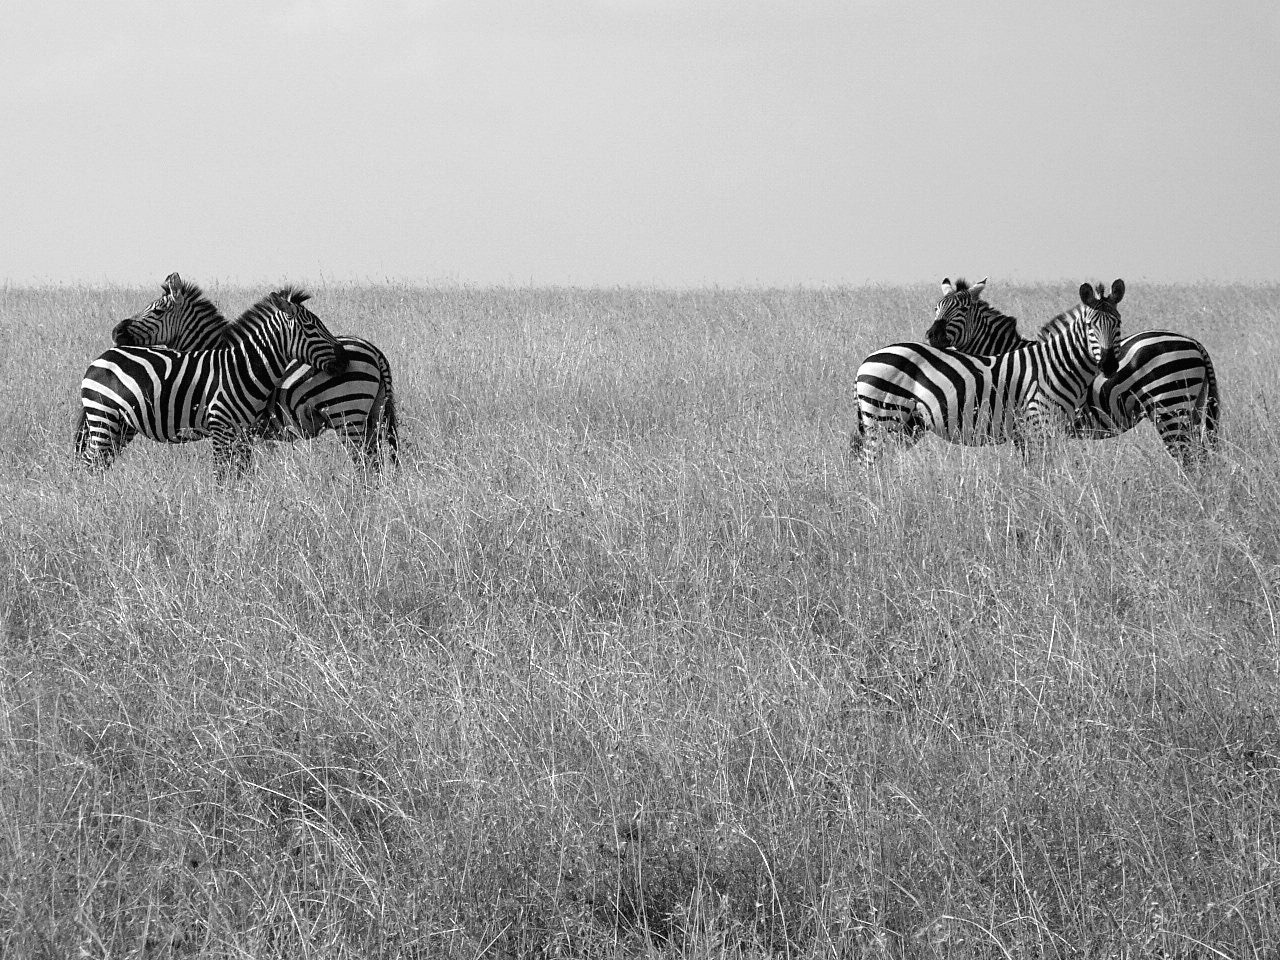 Zebras at the Serengeti National Park in Tanzania